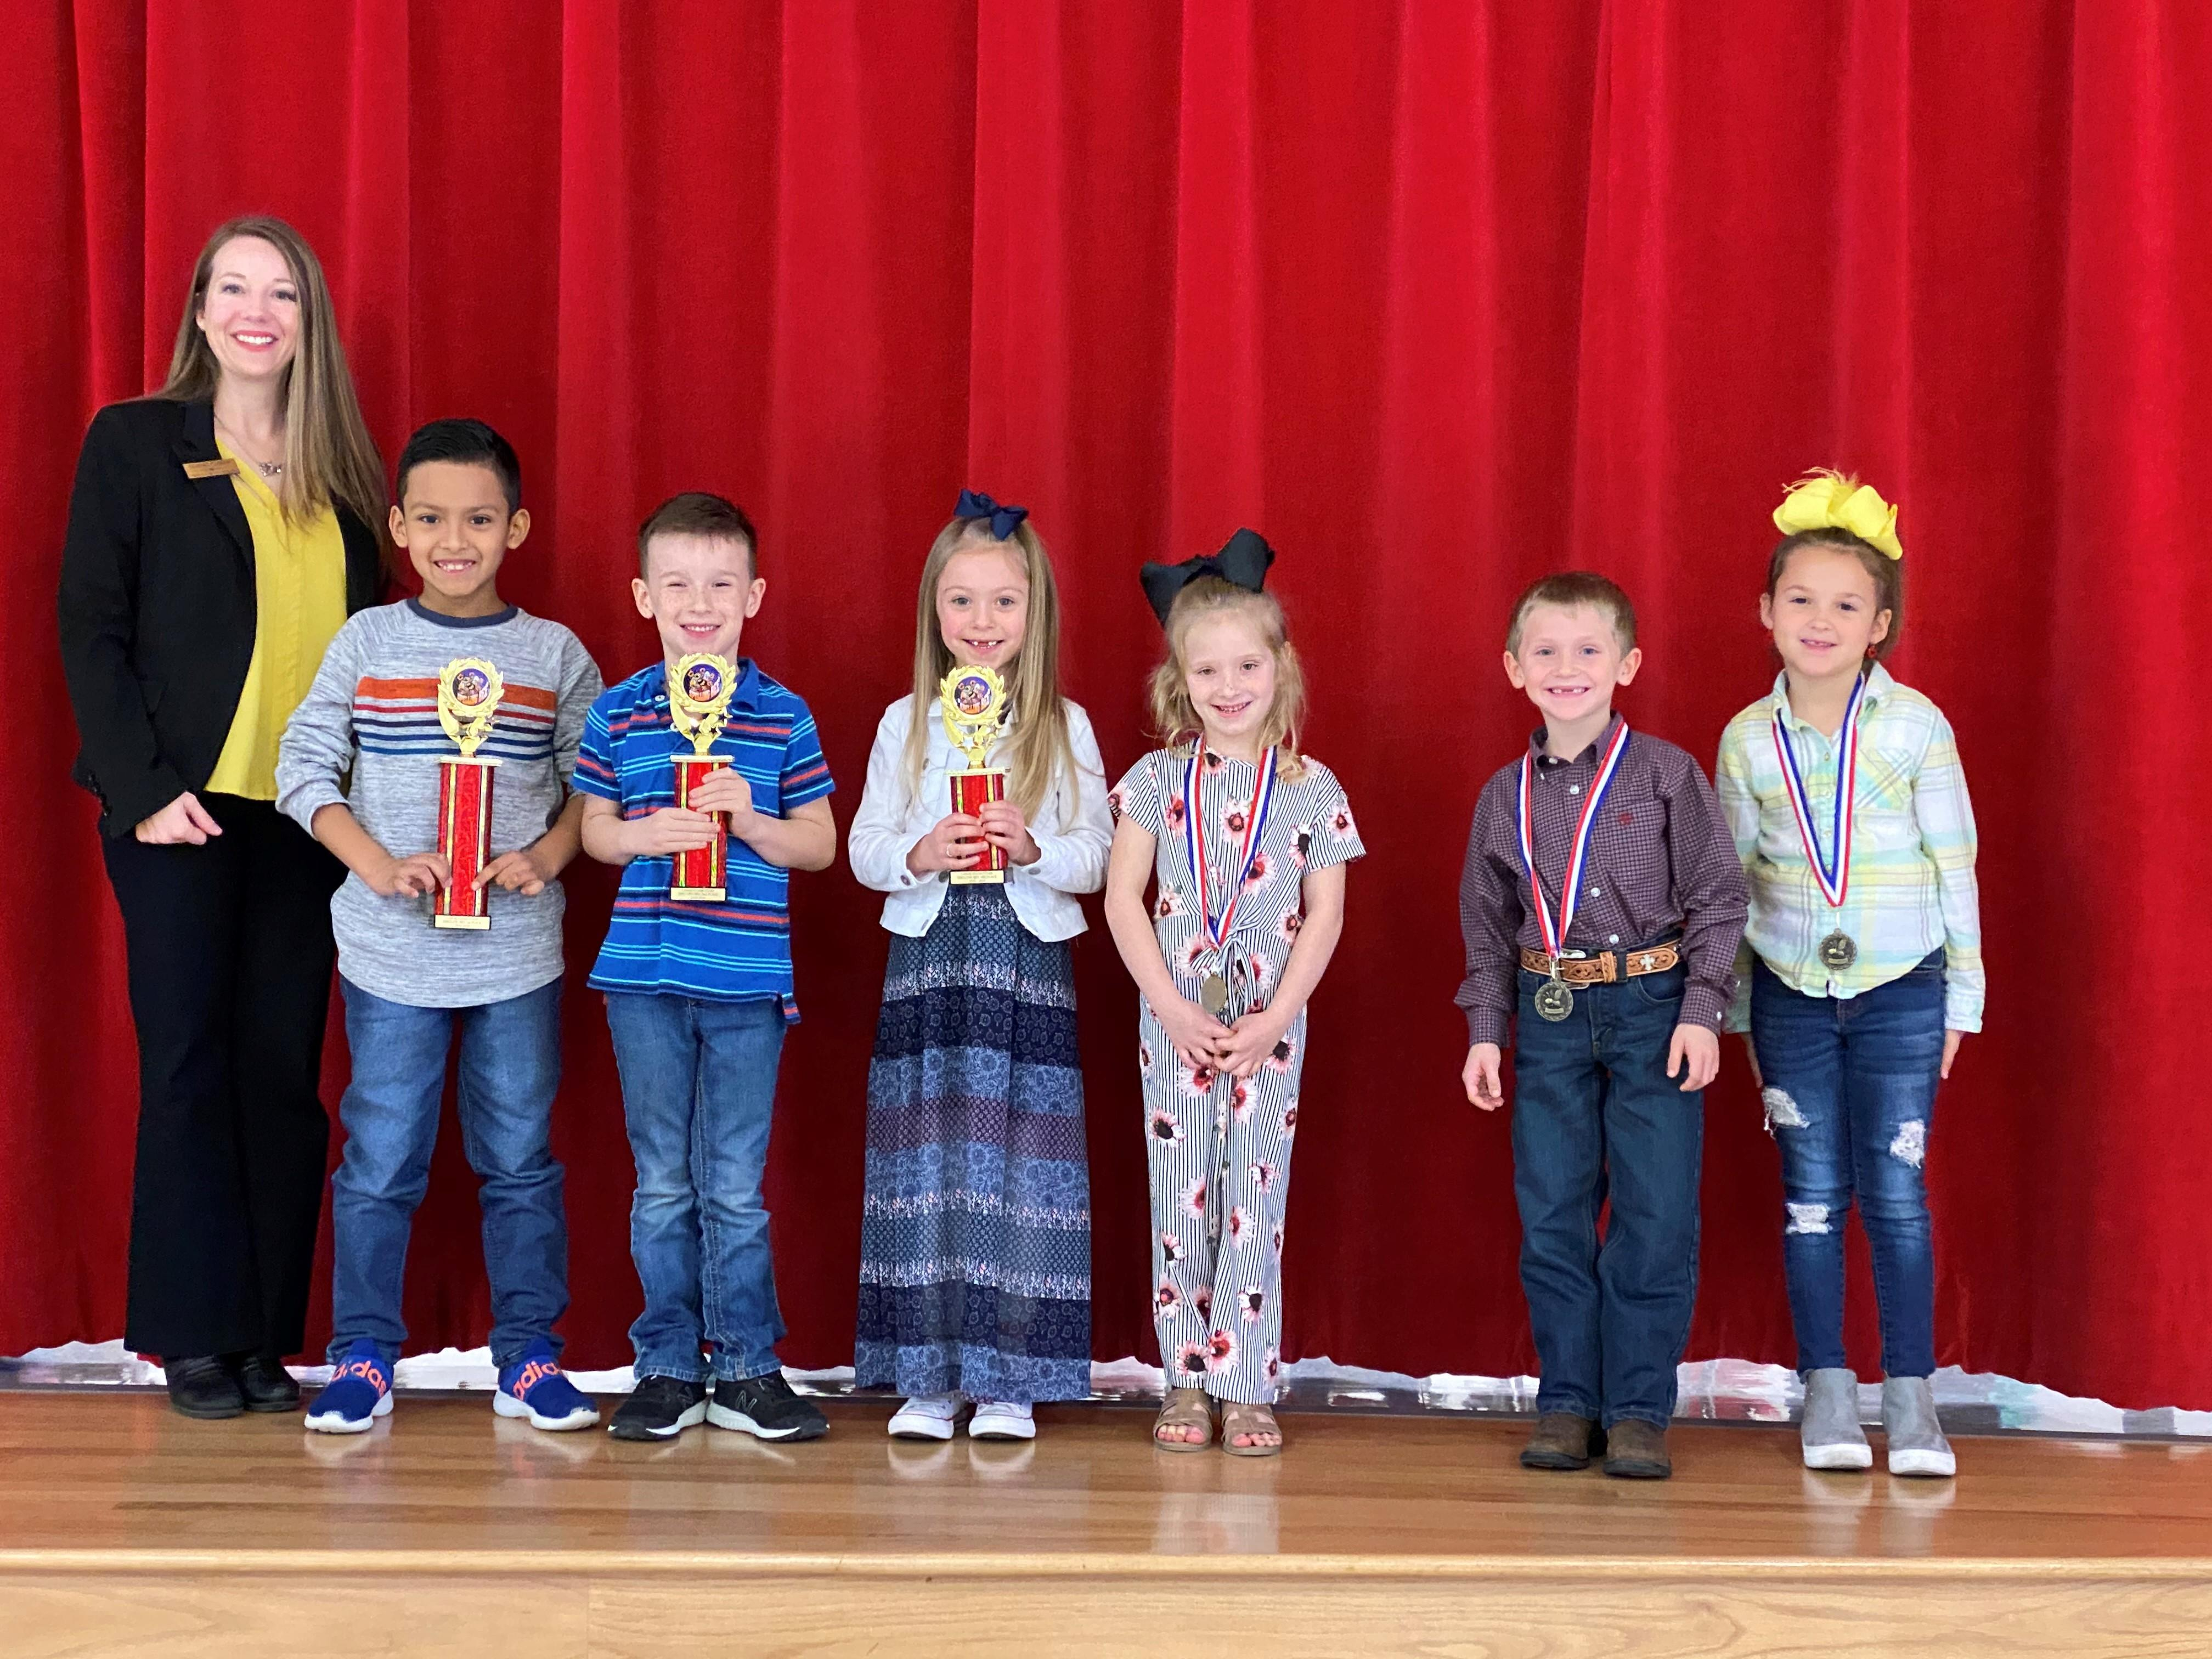 lamar spelling bee winners pictured with principal Mrs. Fowler holding their trophies and medals, 1st through 6th places